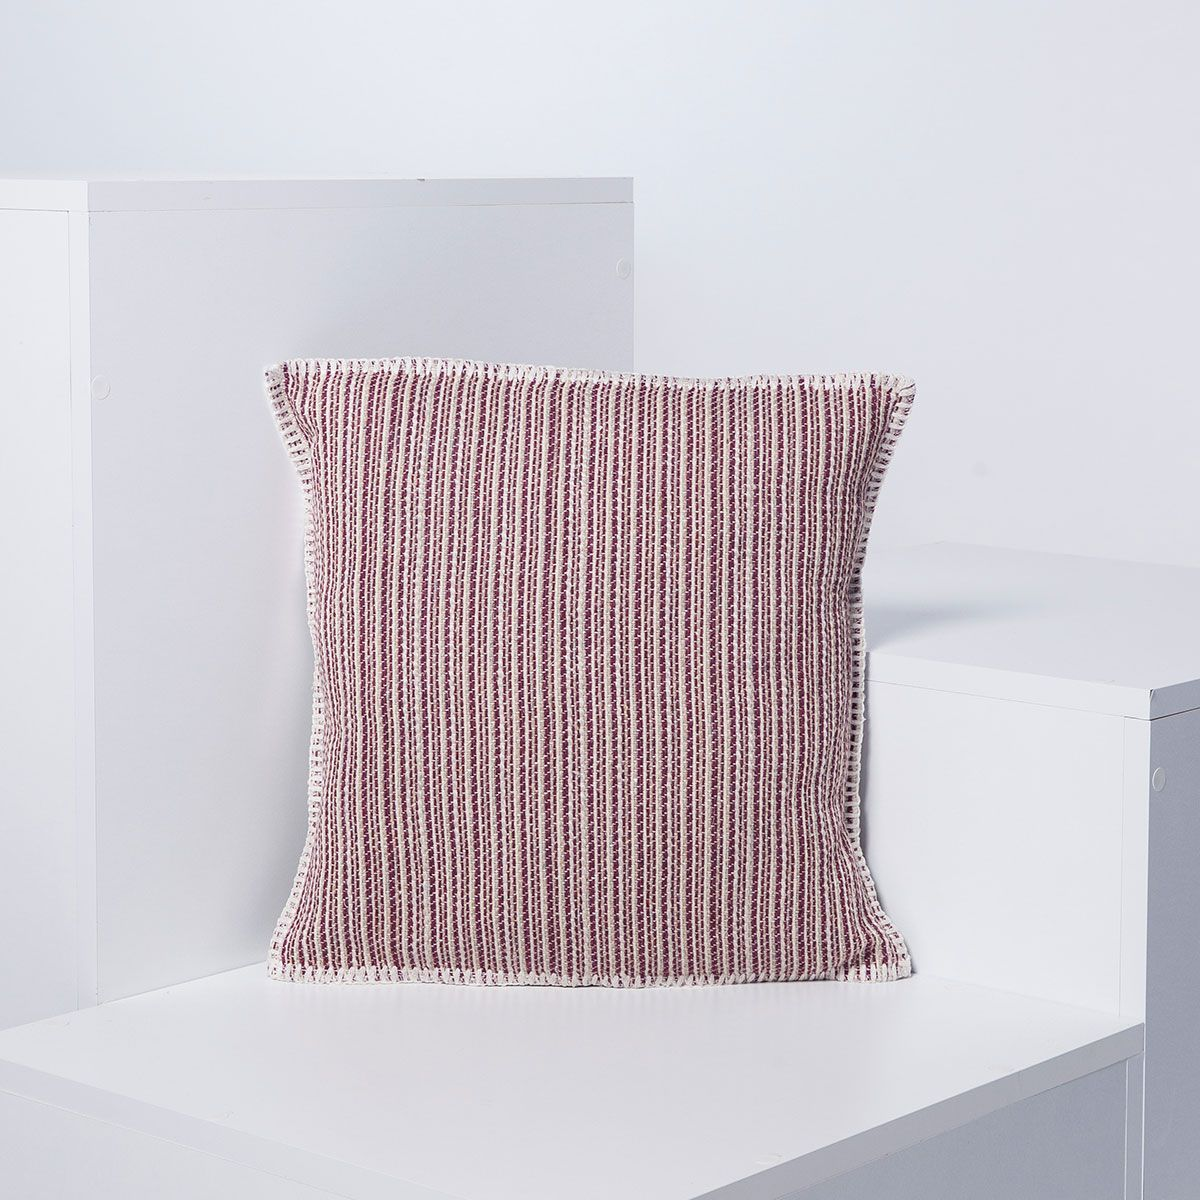 Cushion Wool / Ala - D94 - 40 x 40 cm